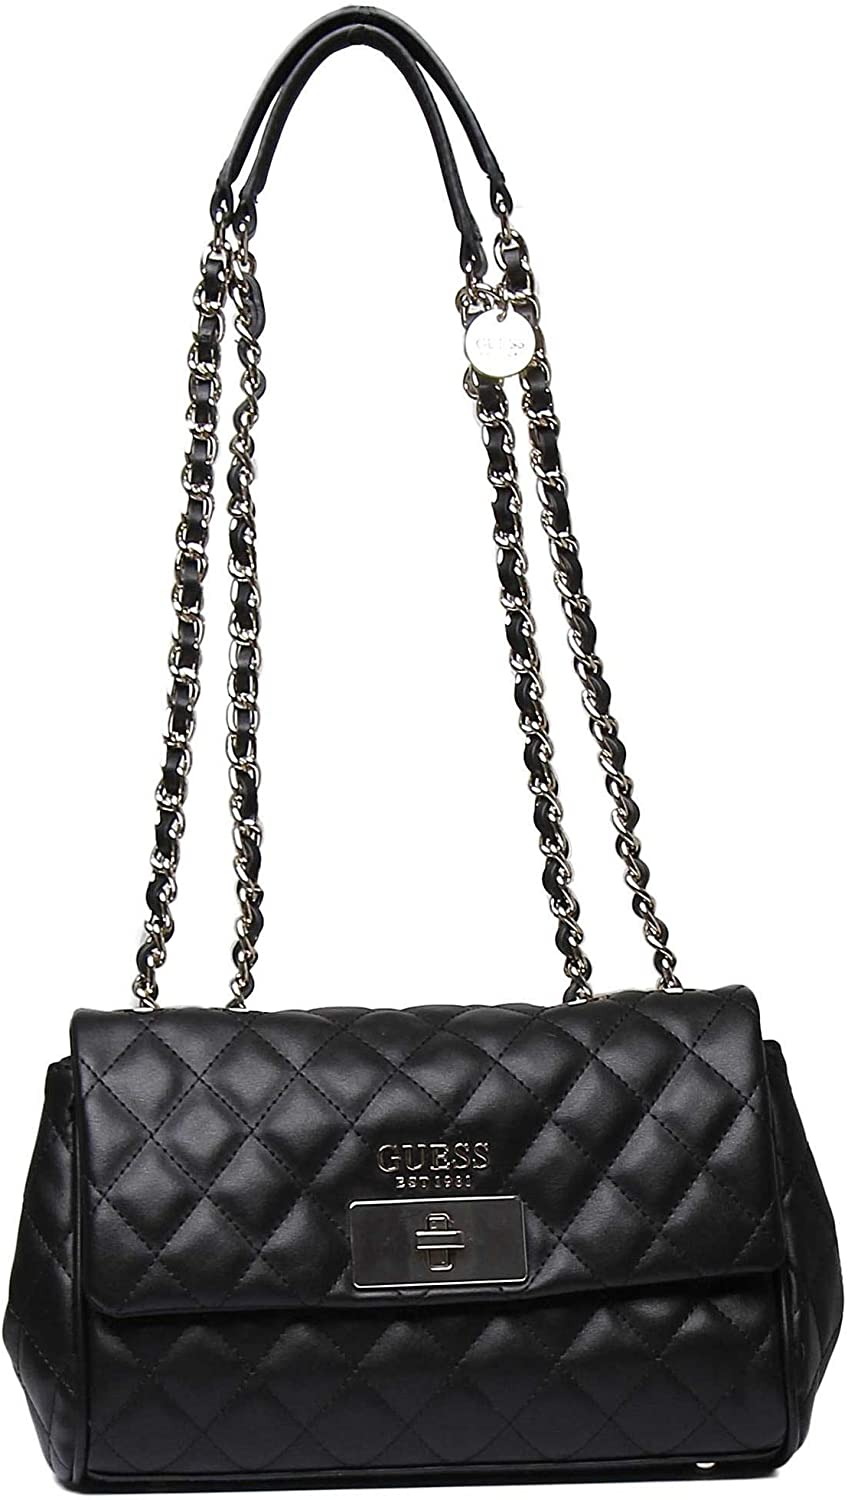 Guess Ryann Shoulder Bag Black in schwarz | fashionette